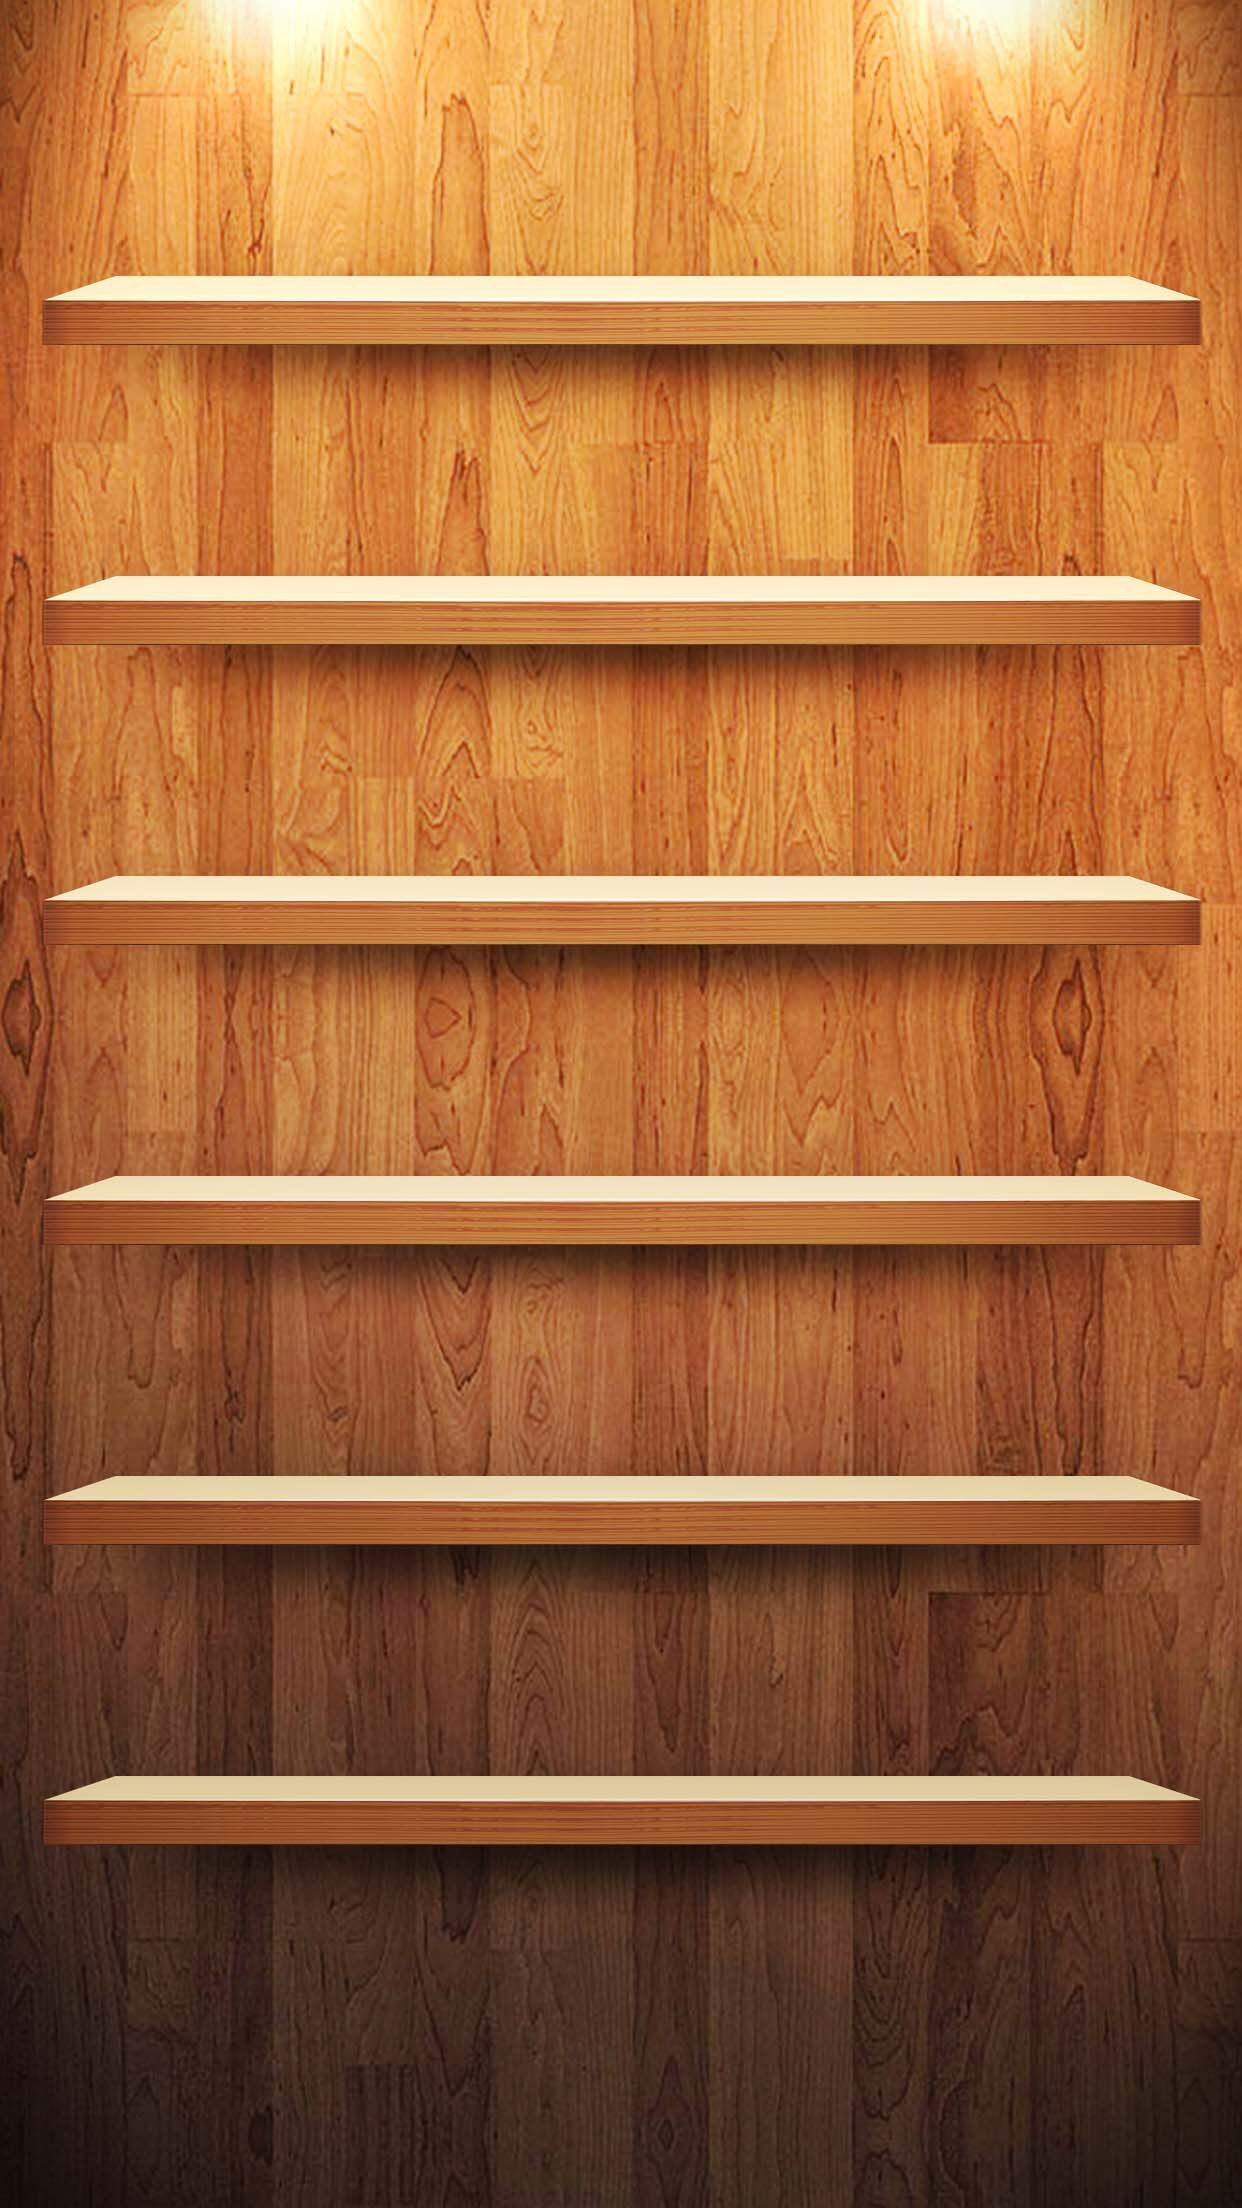 post with 47 votes and 5369 views shared by wallpapersapp 10 creative shelves wallpapers for the iphone 6 plus